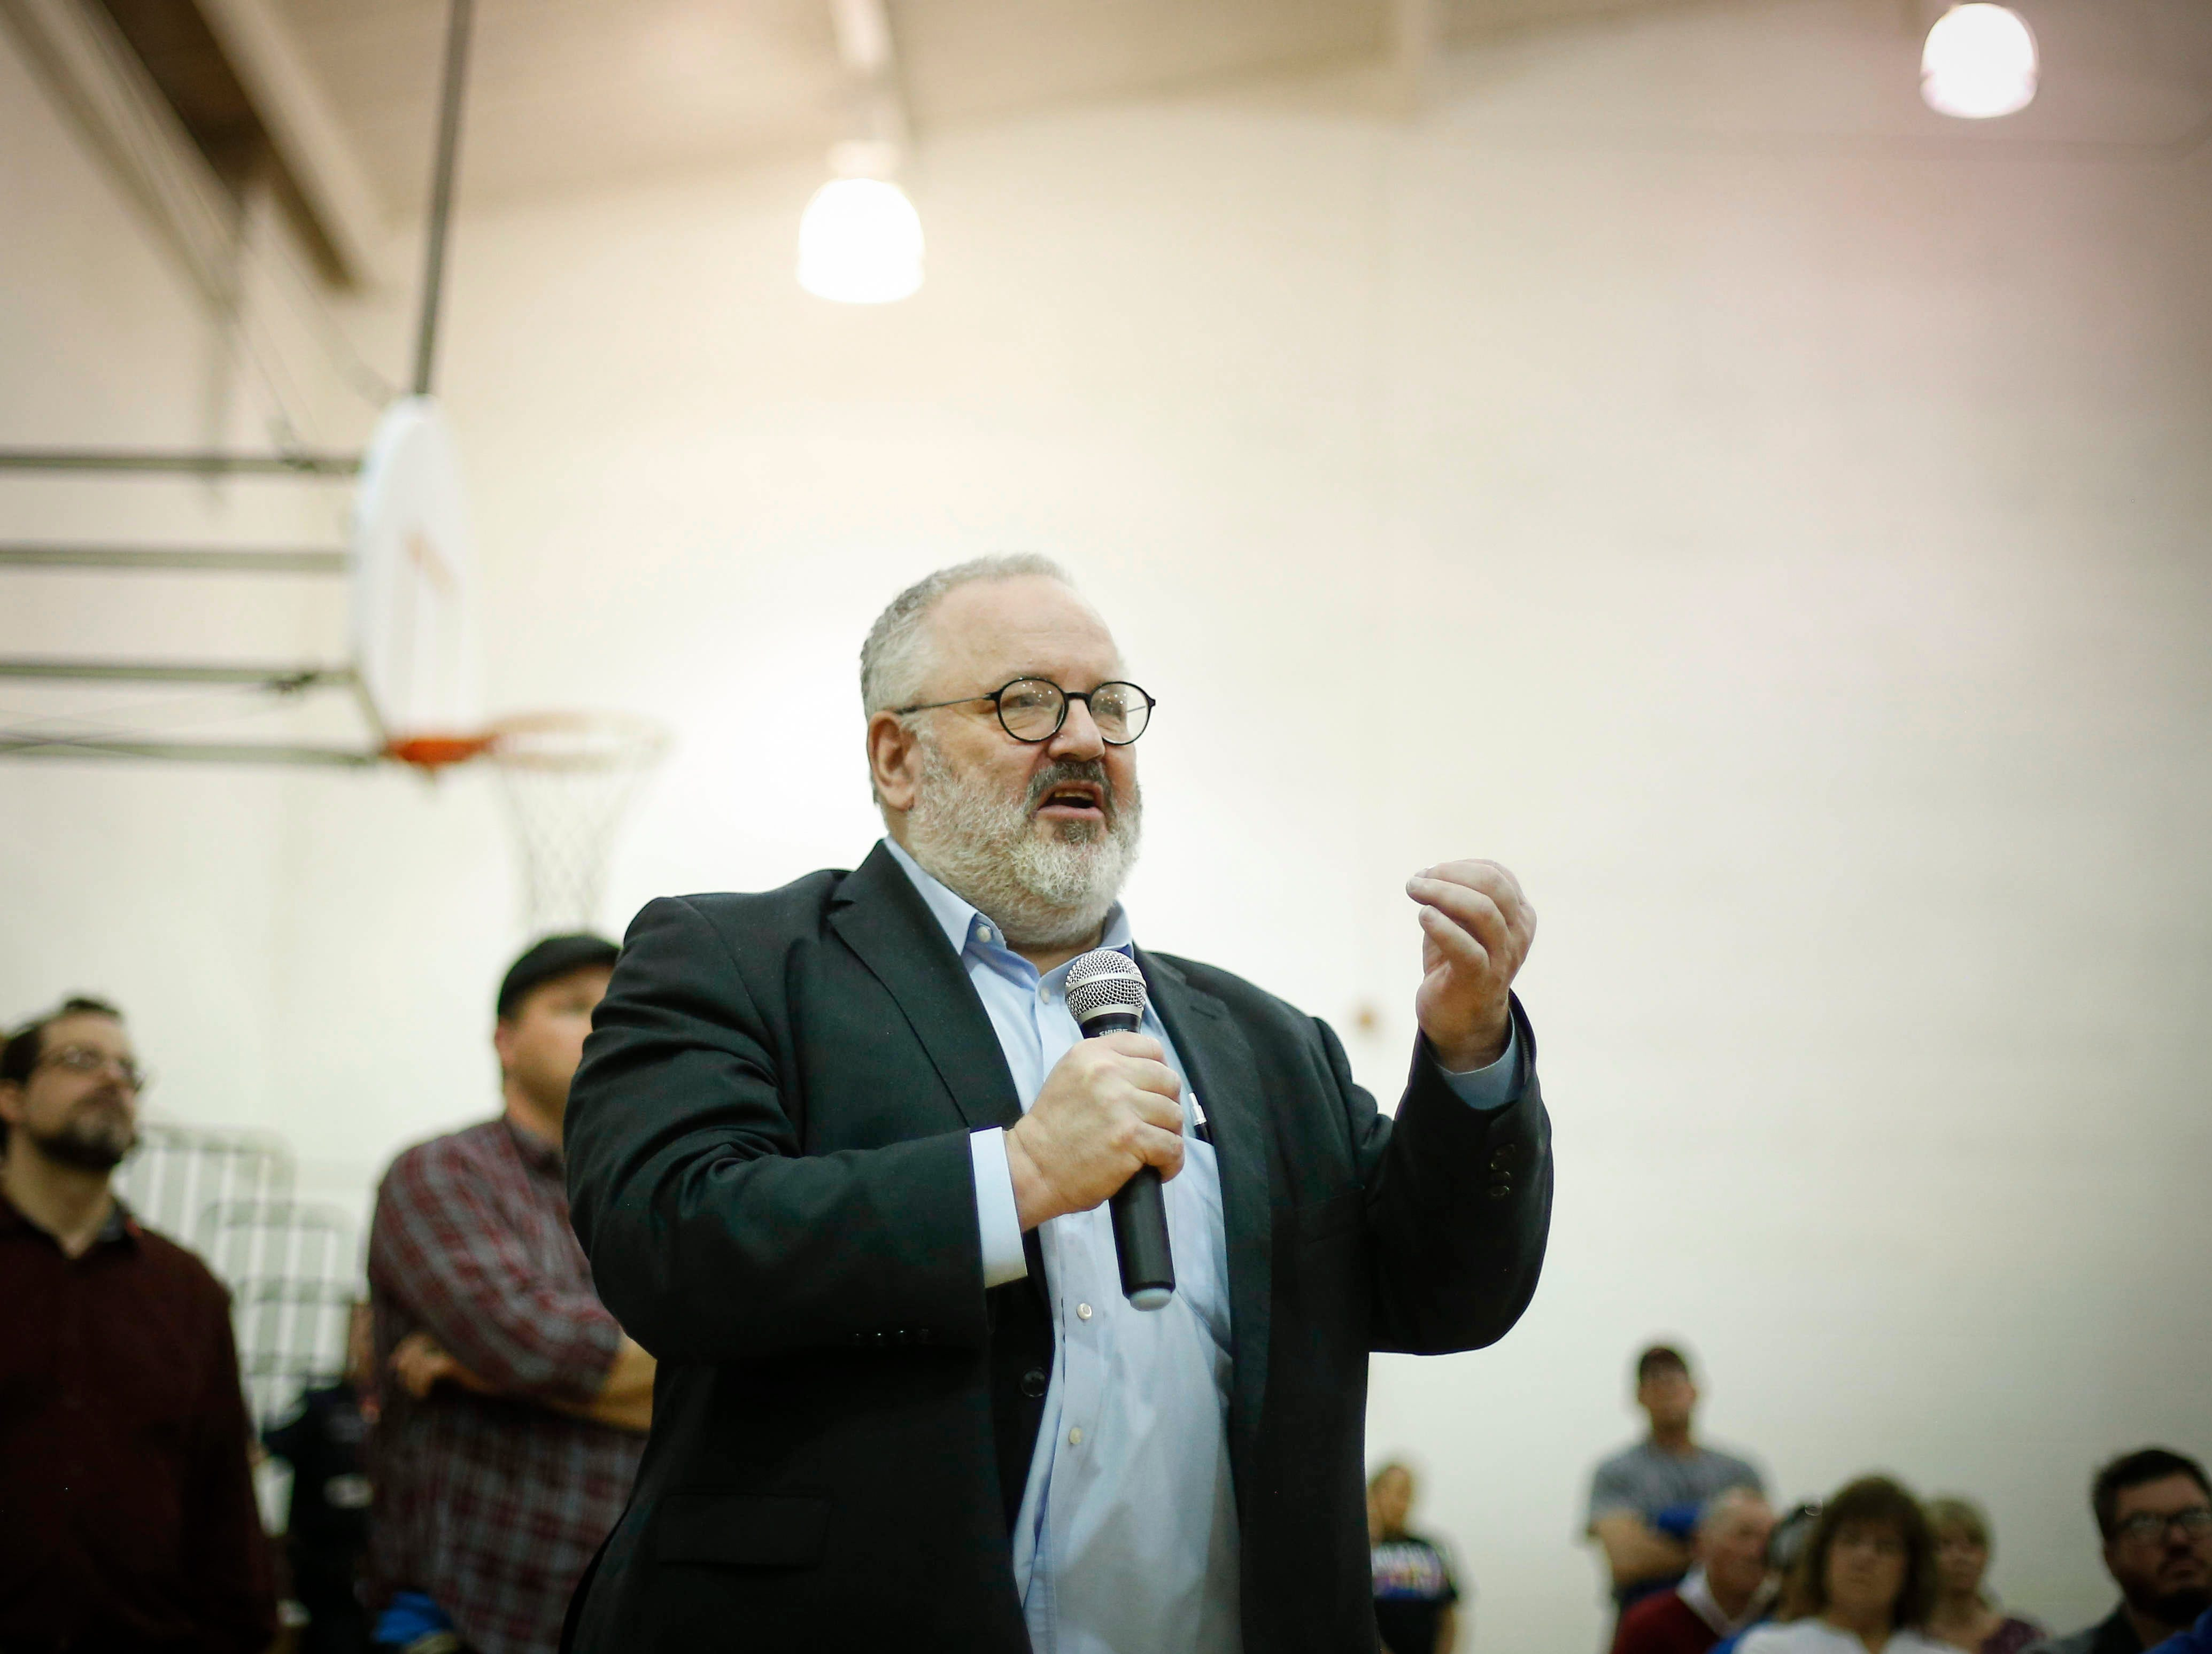 Marc Daniels, originally from Des Moines, asks U.S. Sen. Bernie Sanders a question during a town hall meeting at West Middle School in Muscatine on Saturday, April 6, 2019.